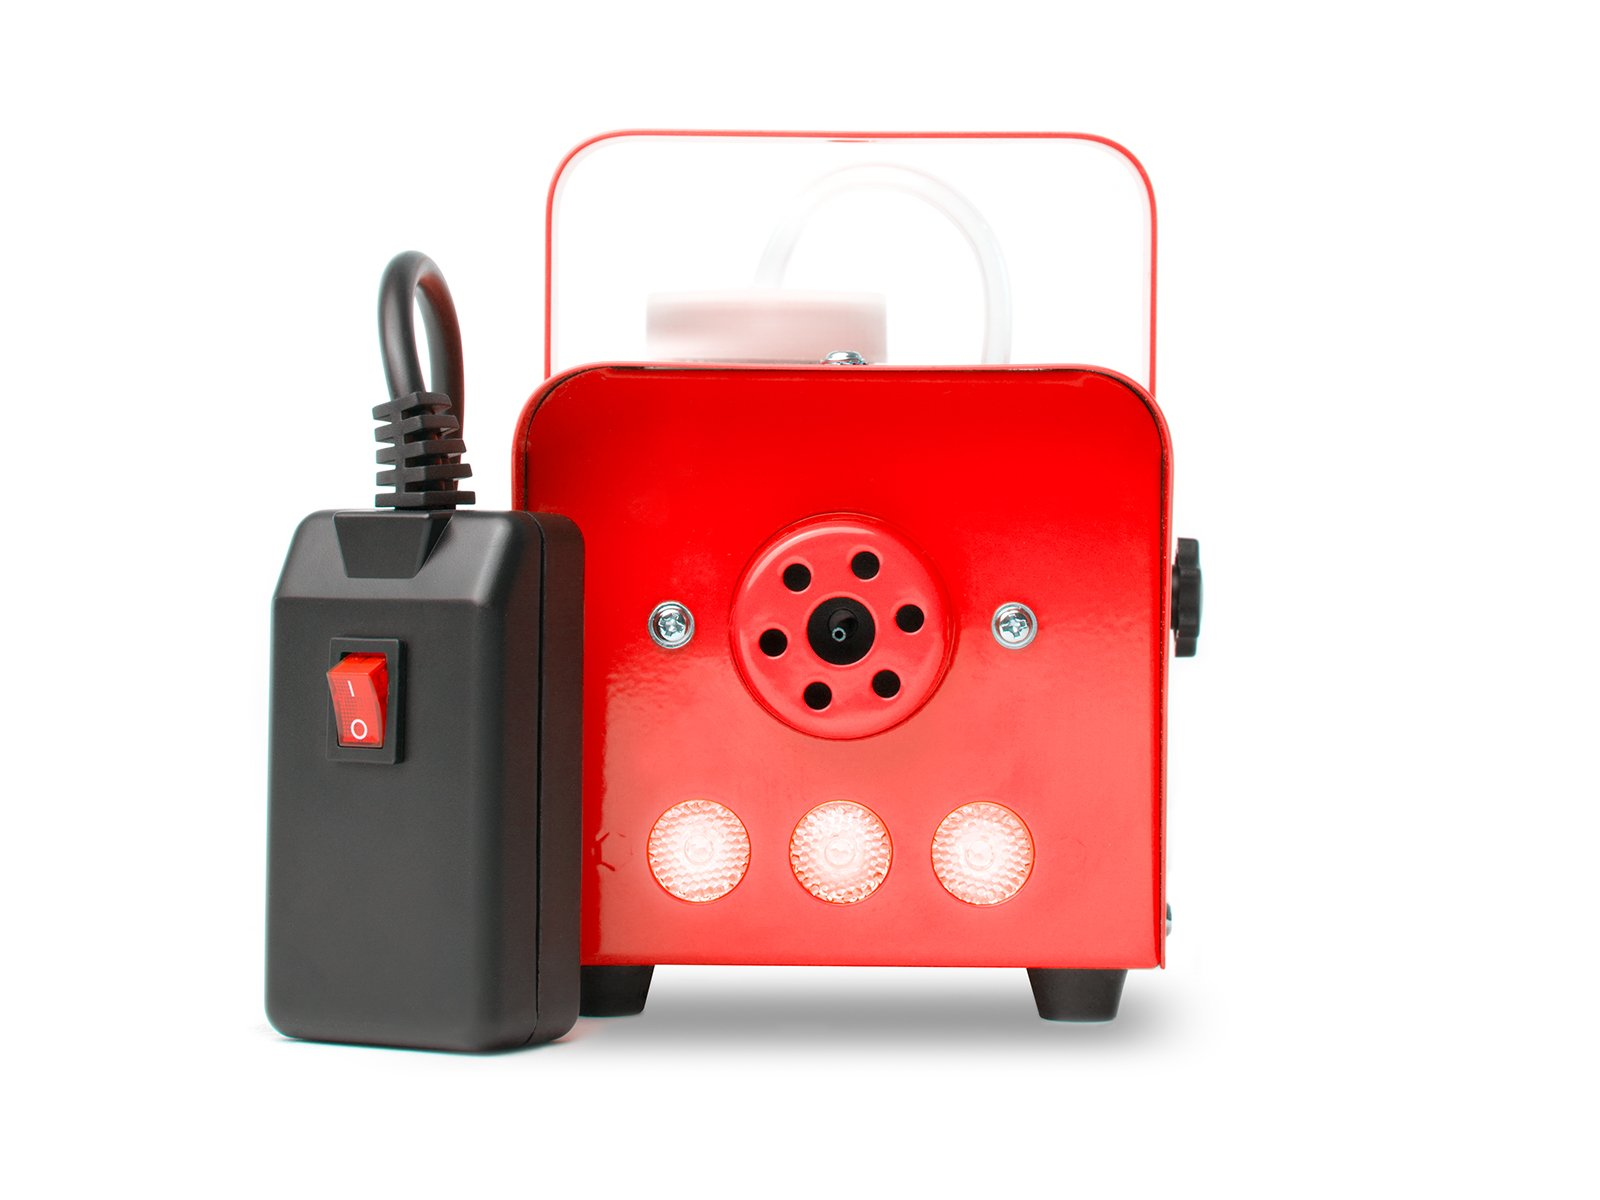 MARQ Fog 400 LED | 400W Water-Based Special Effects Fog Machine with Red-Color LED Lights (Red) by MARQ (Image #2)